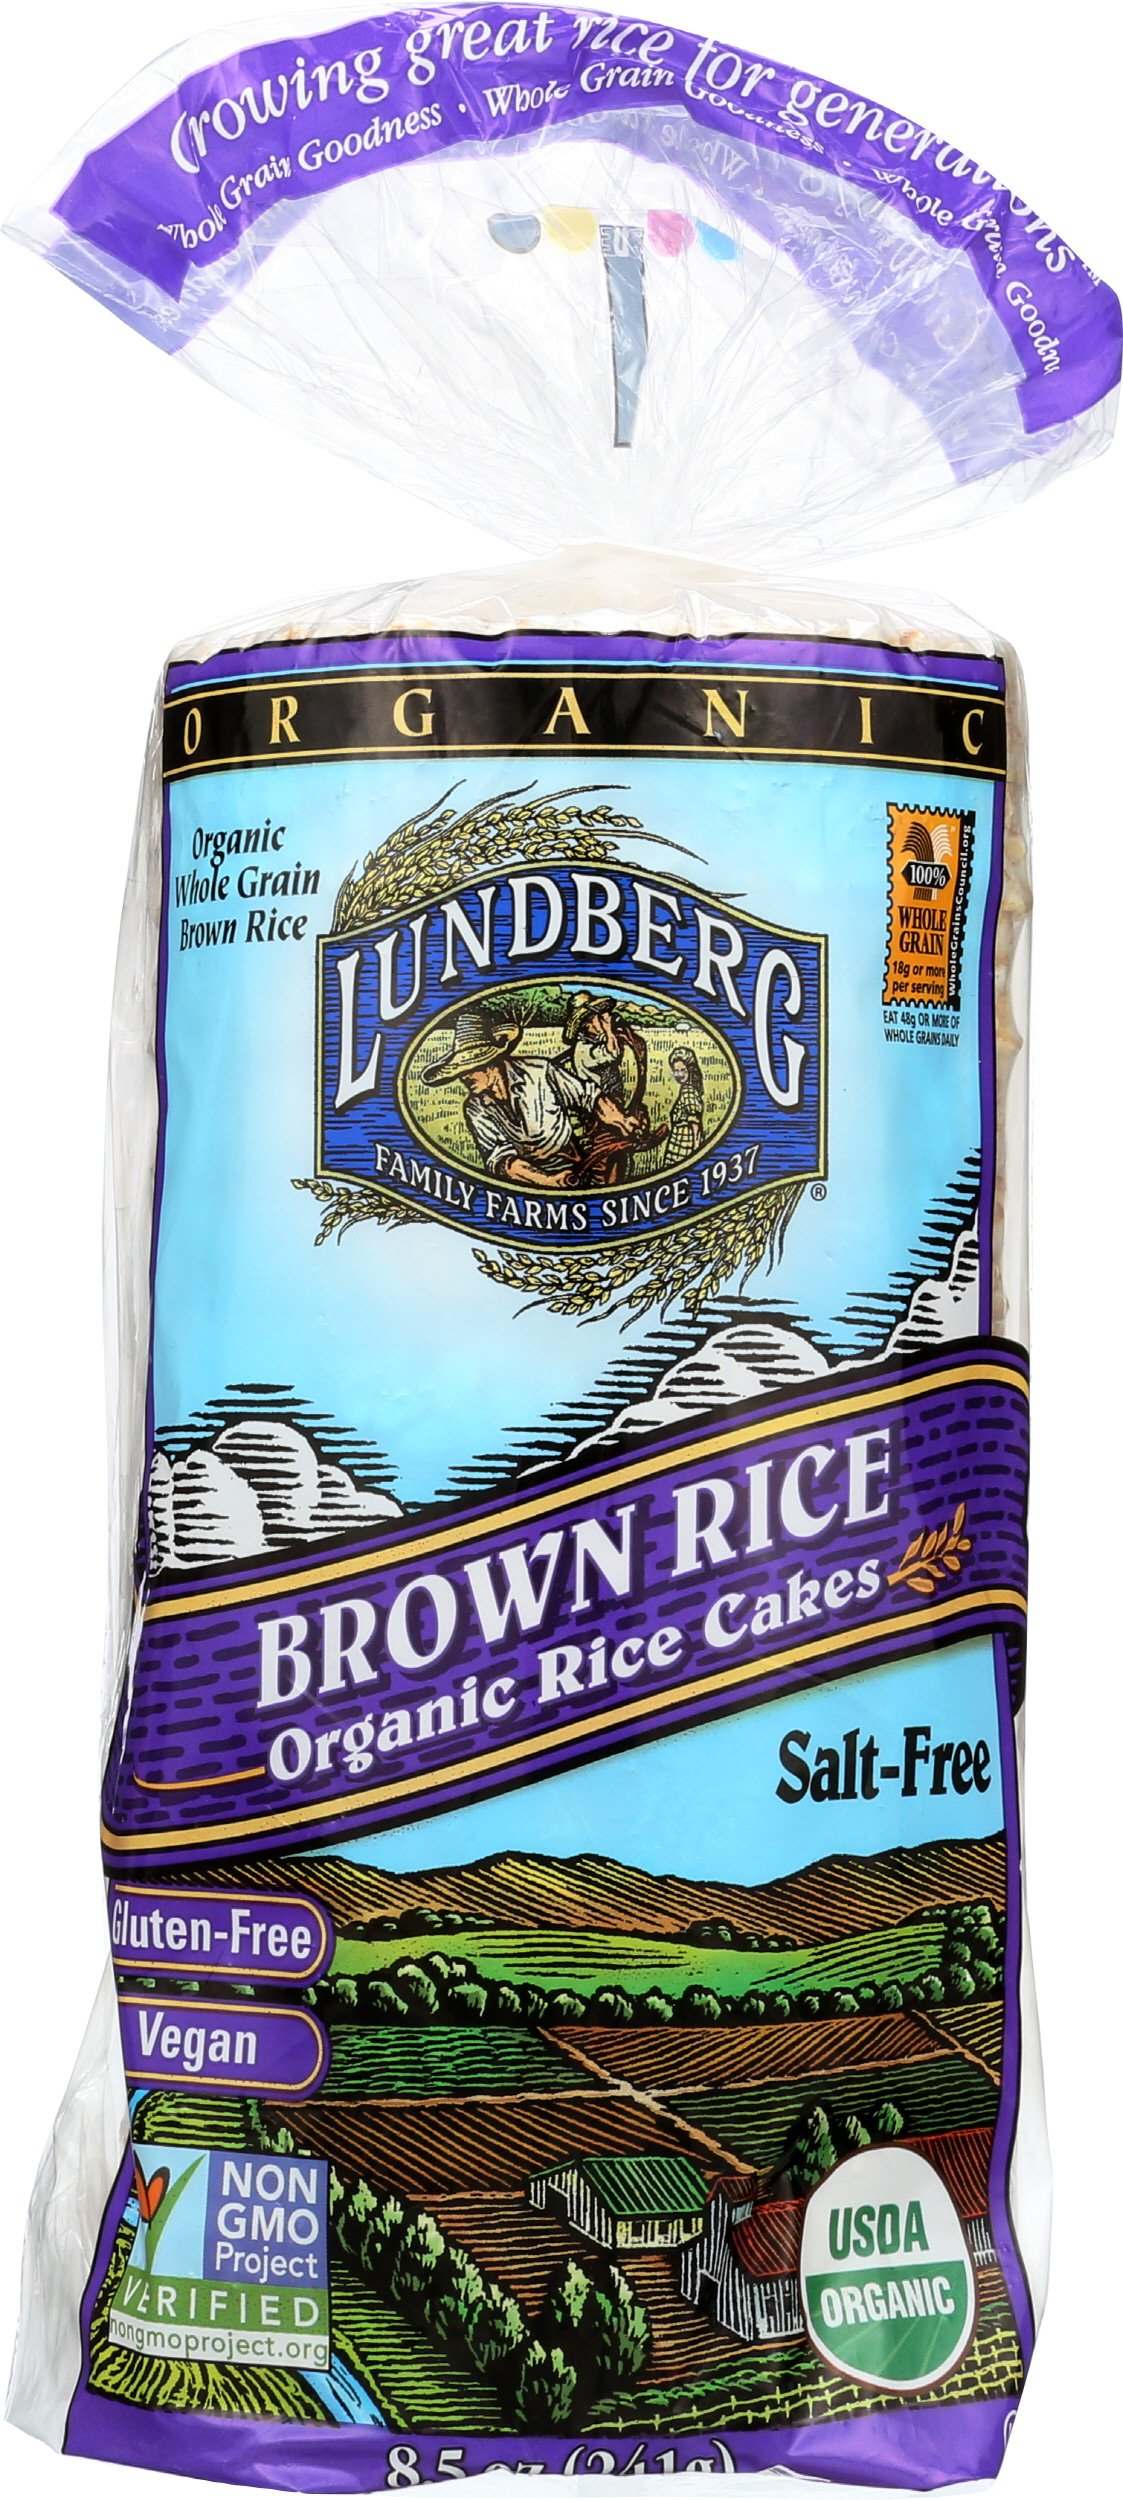 Lundberg Family Farms Organic Brown Rice Cakes, Salt-Free, 8.5 Ounce (Pack of 12) by Lundberg